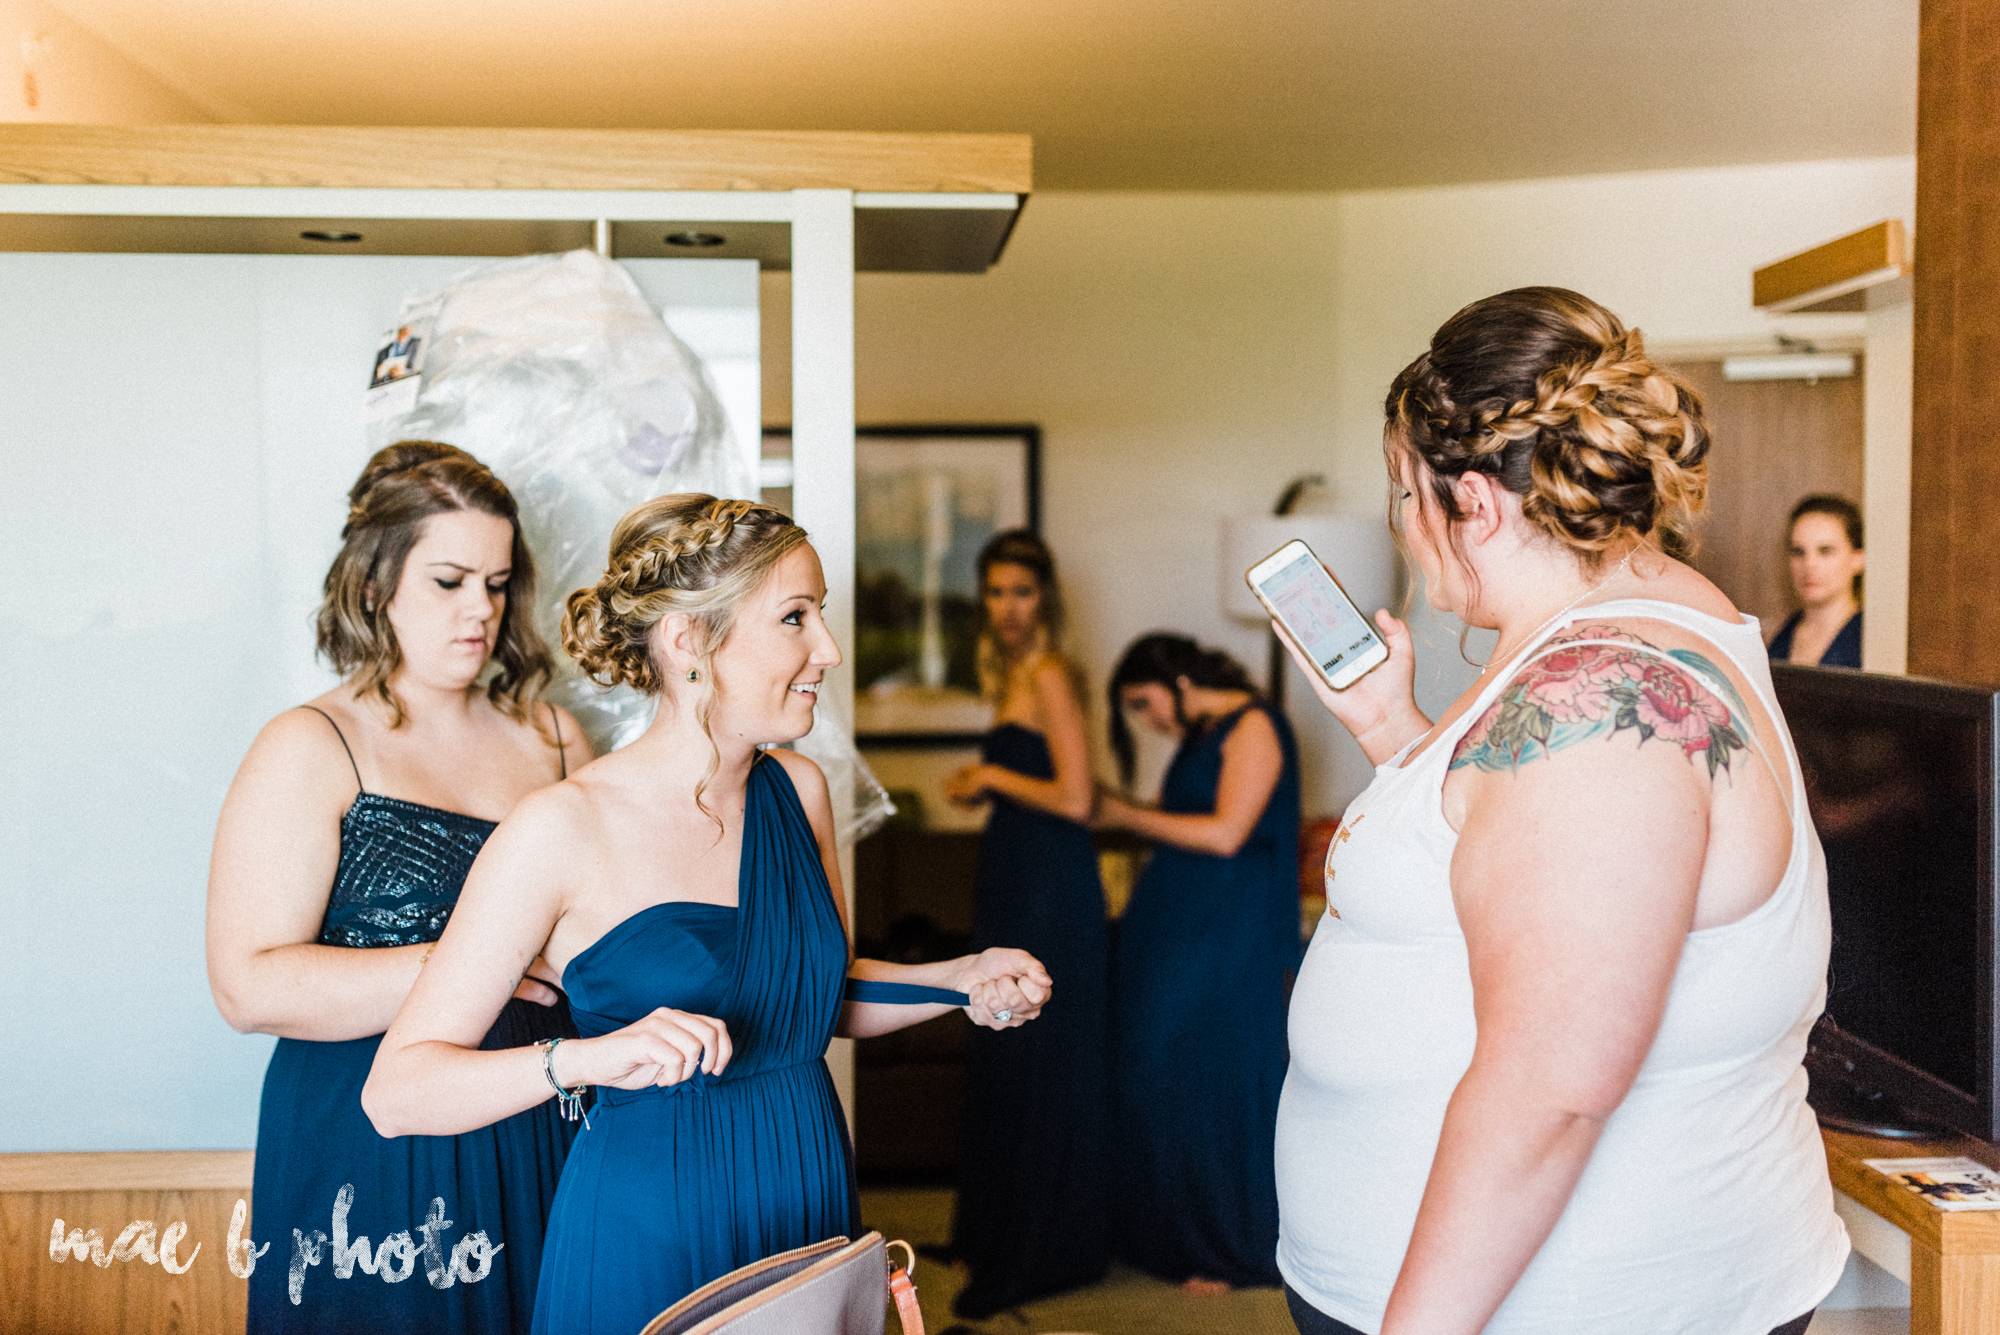 Kristina and ryan's personal vintage glam fall wedding at disalvo's station restaurant and the arnold palmer latrobe country club in latrobe, pa photographed by youngstown wedding photographer mae b photo-9.jpg